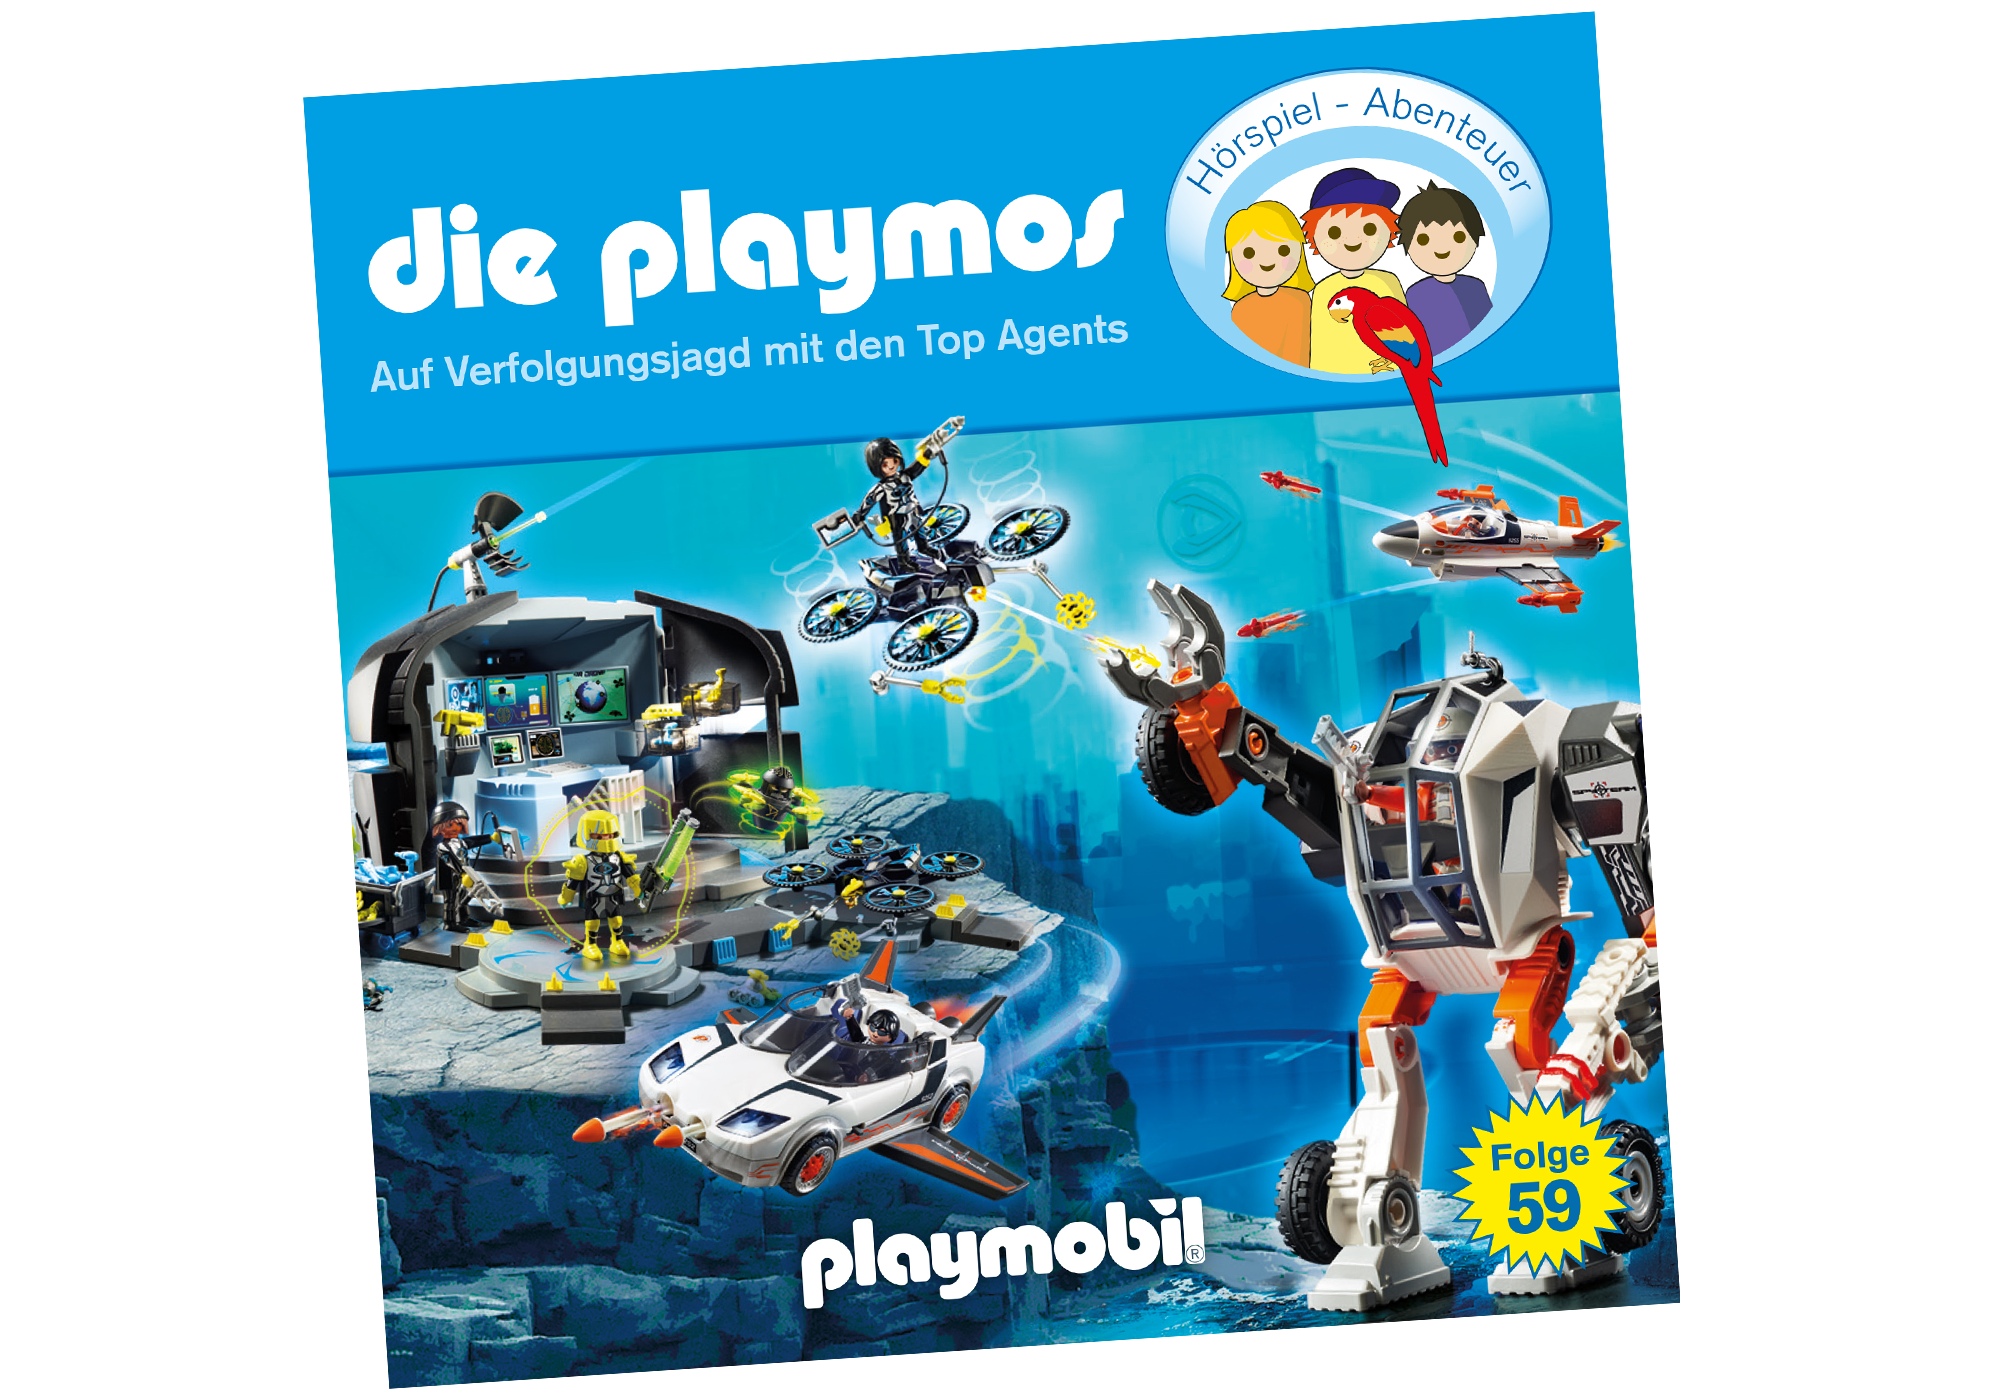 http://media.playmobil.com/i/playmobil/80061_product_detail